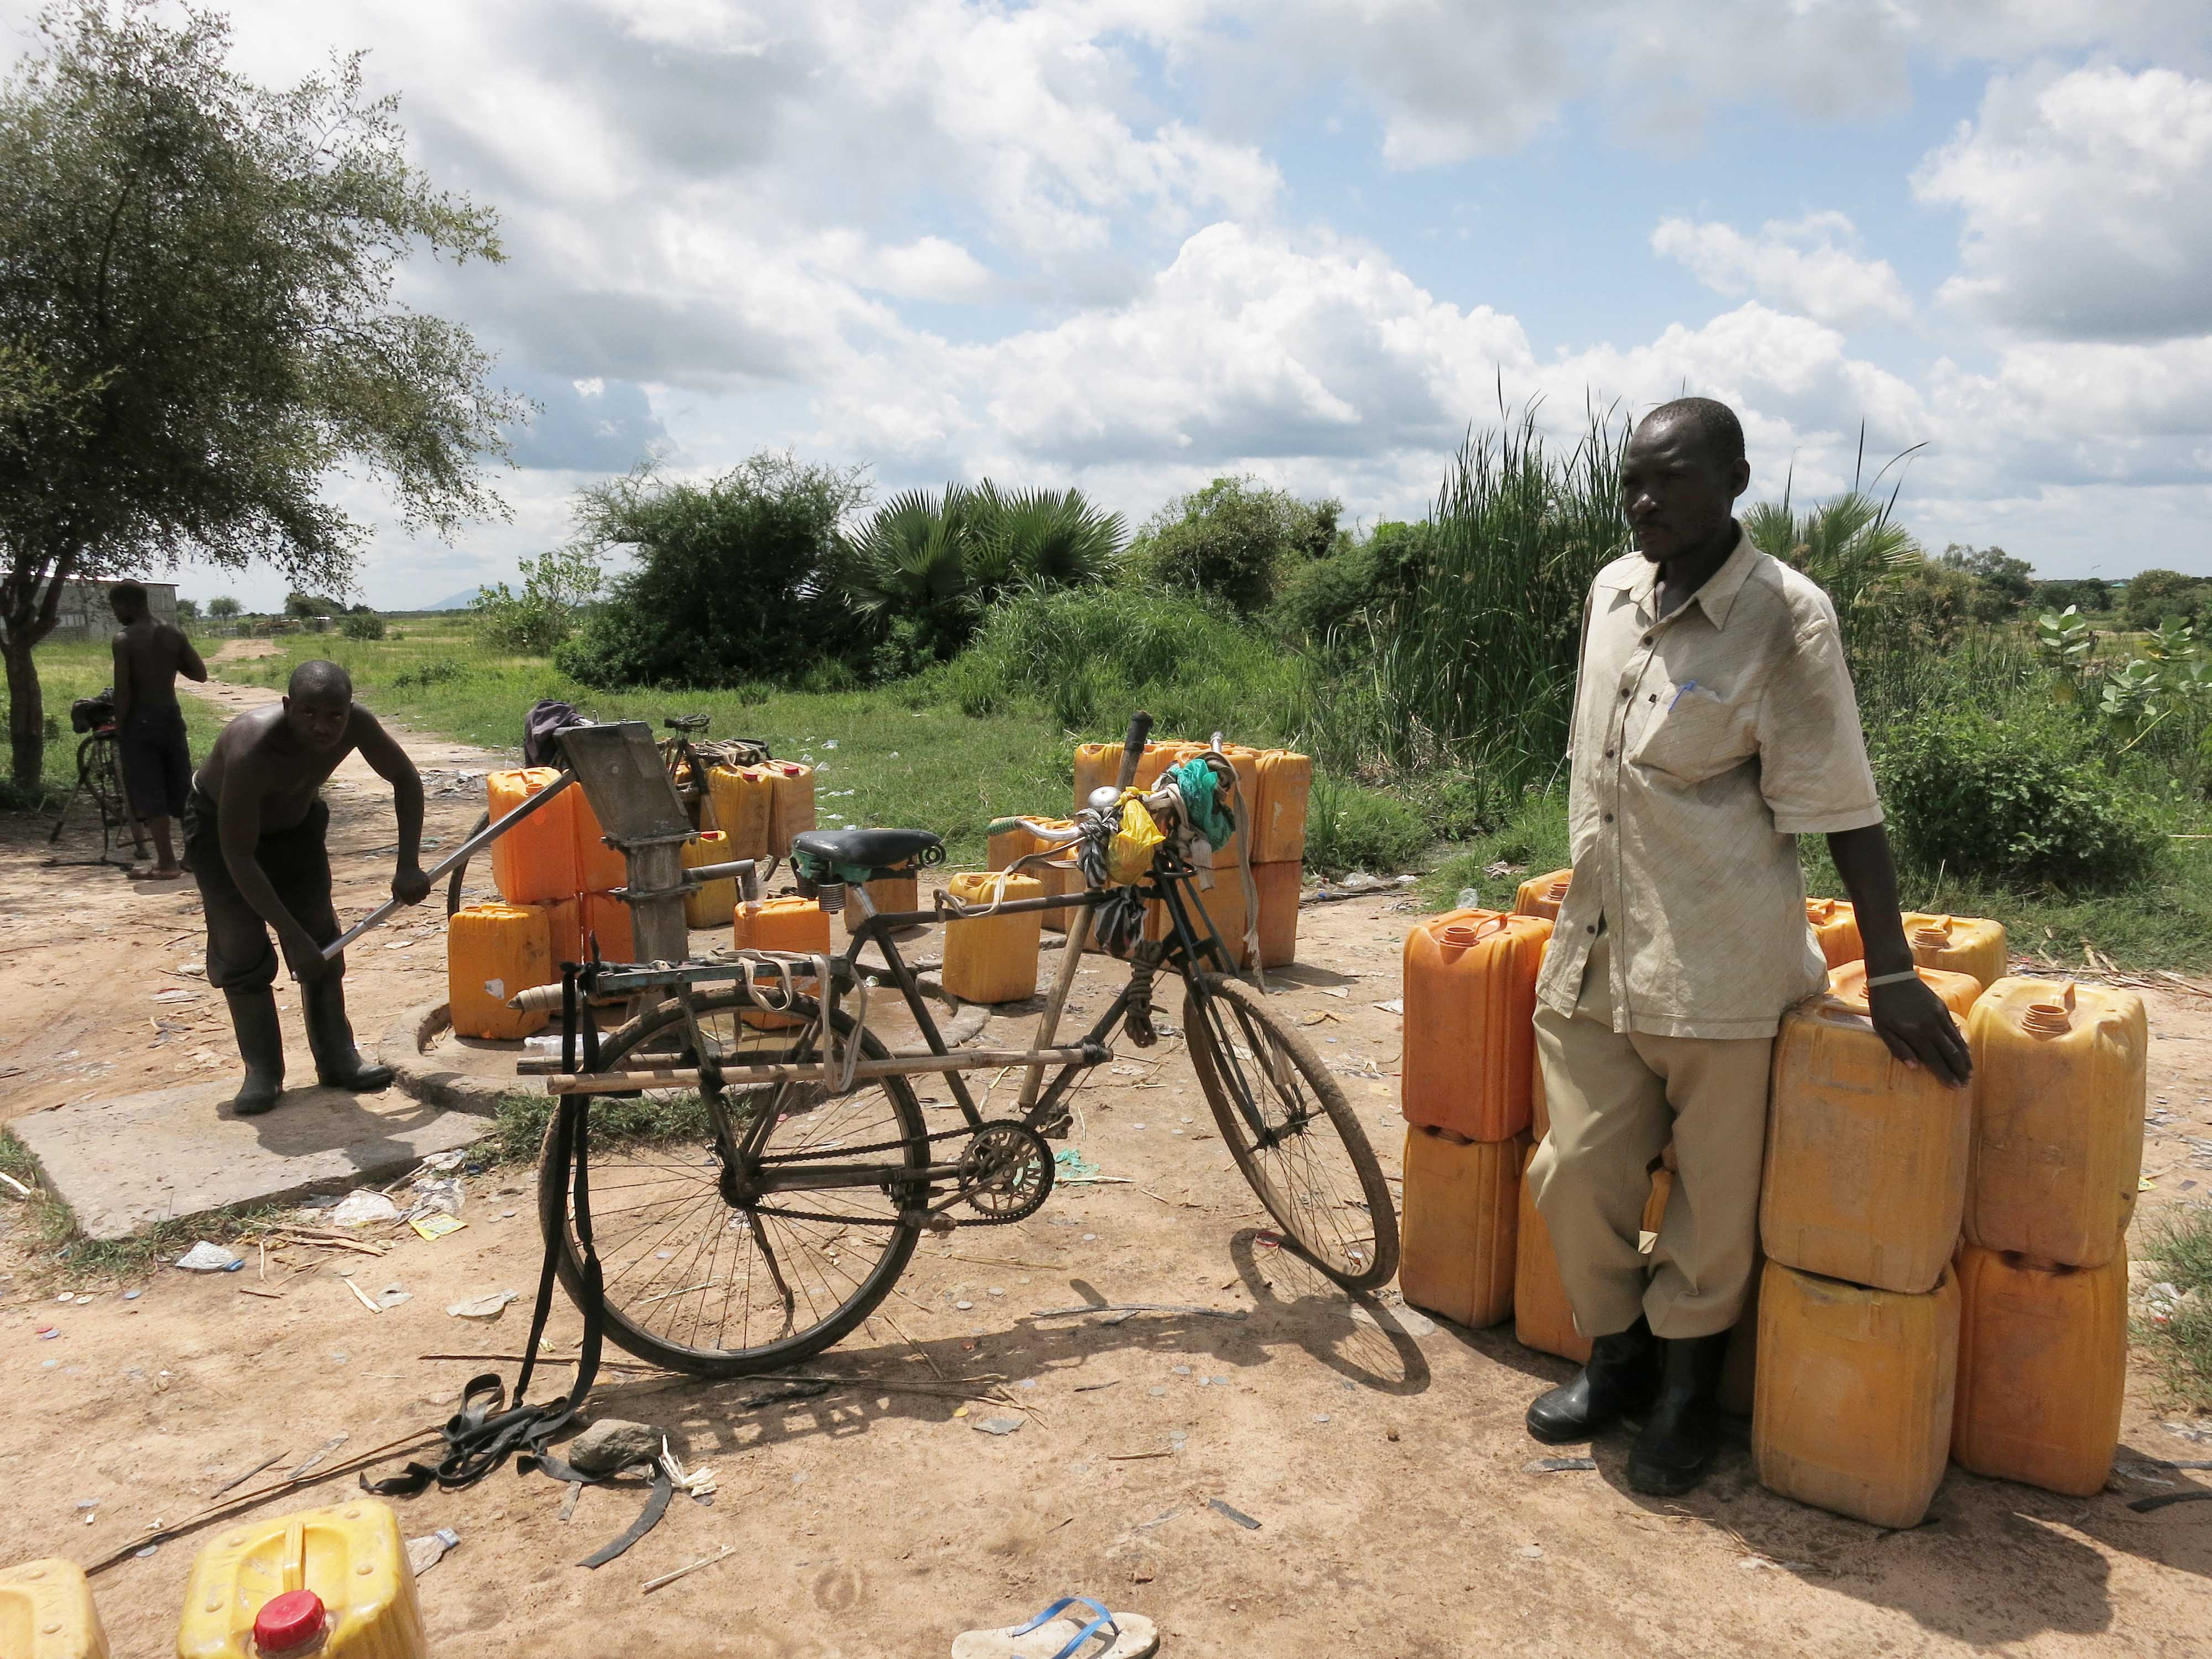 Moses is a water seller (bicycle)  in Gumba, South Sudan. Credit: Stella Madete/Oxfam